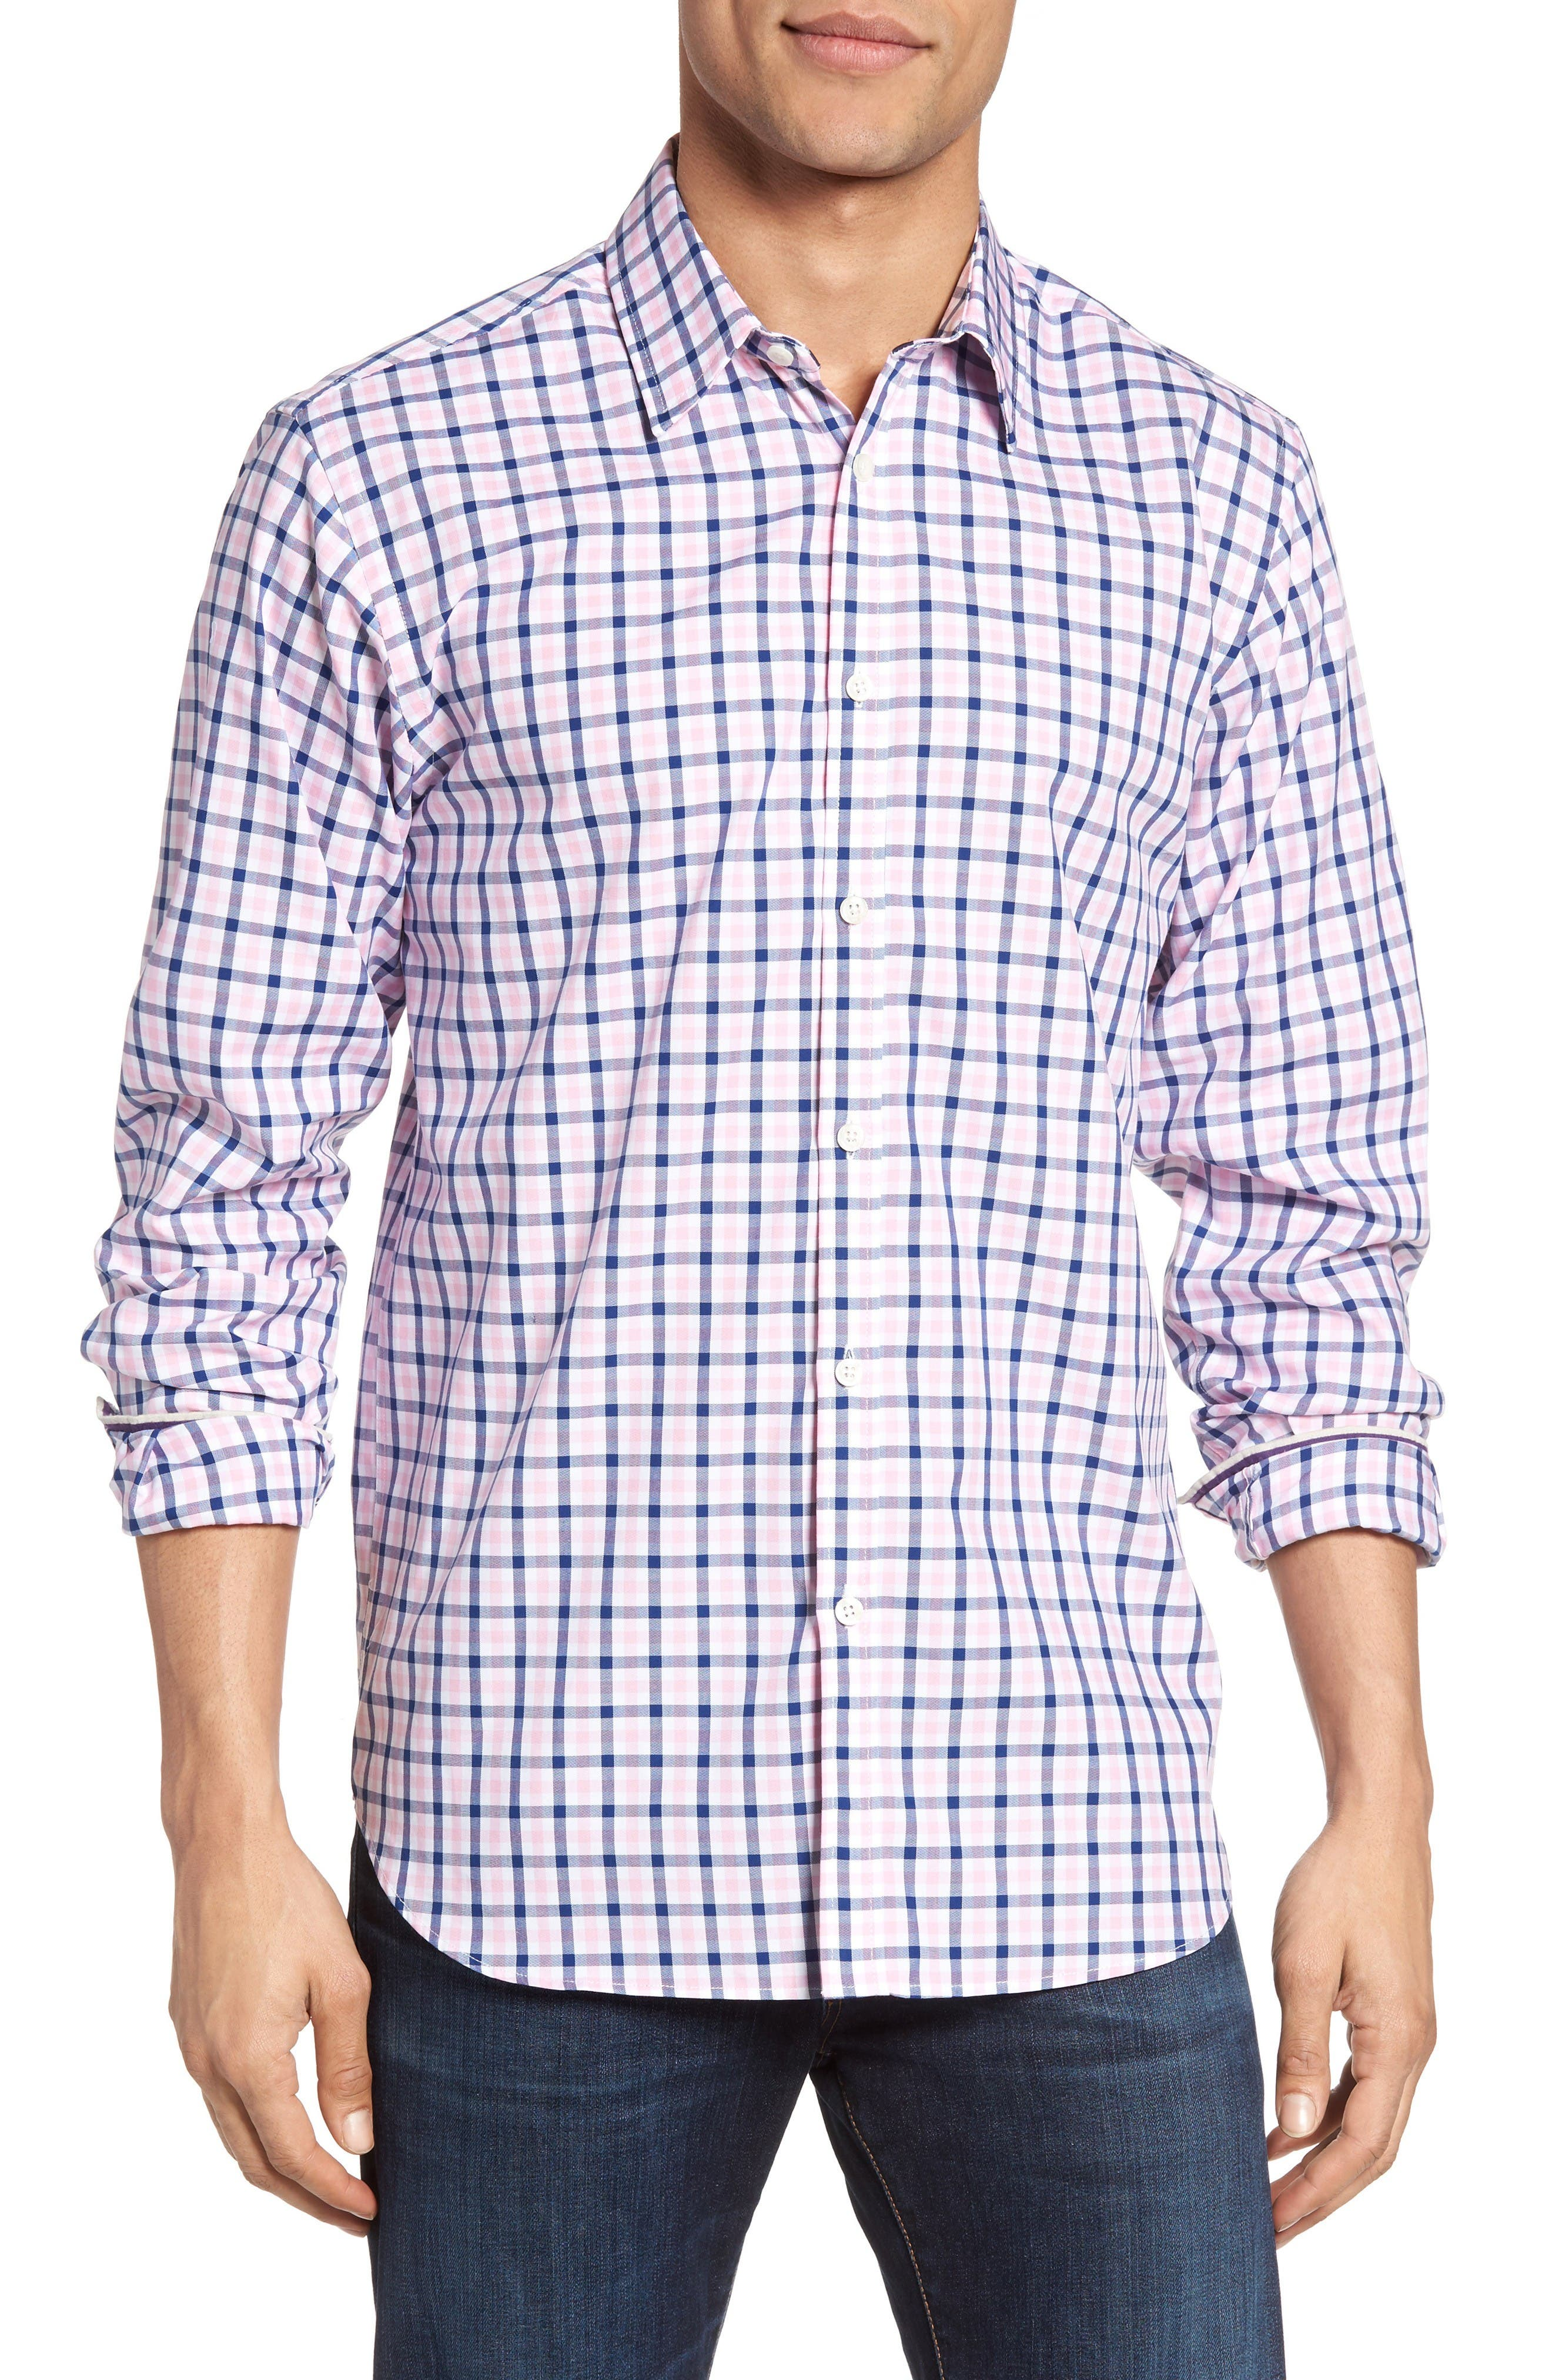 Jeremy Argyle Fitted Check Tattersall Sport Shirt